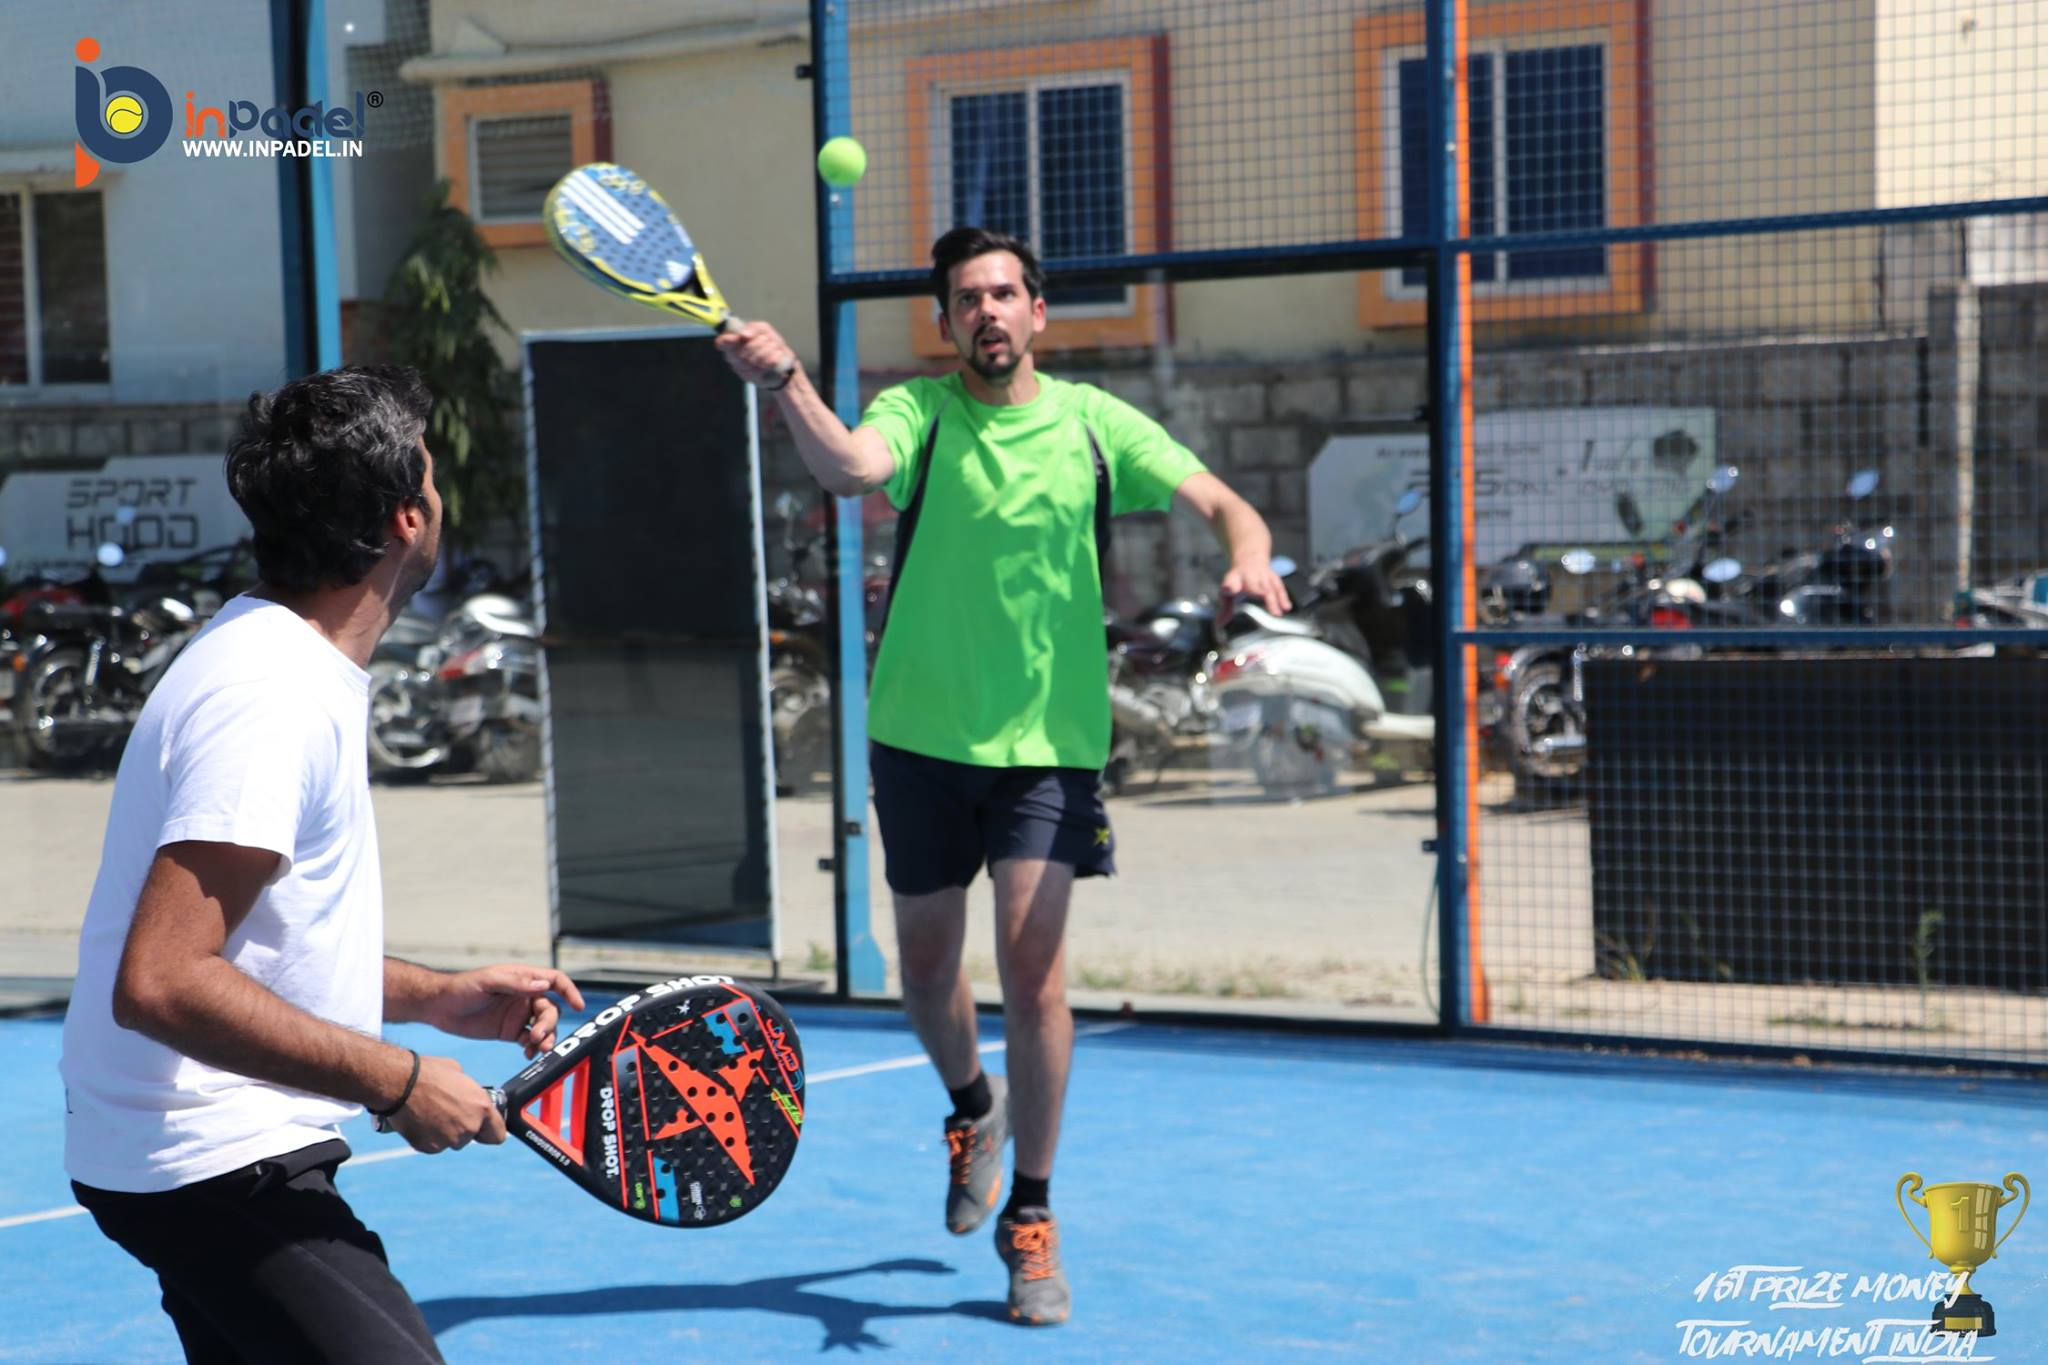 InPadel Prize Money Tournament (44)